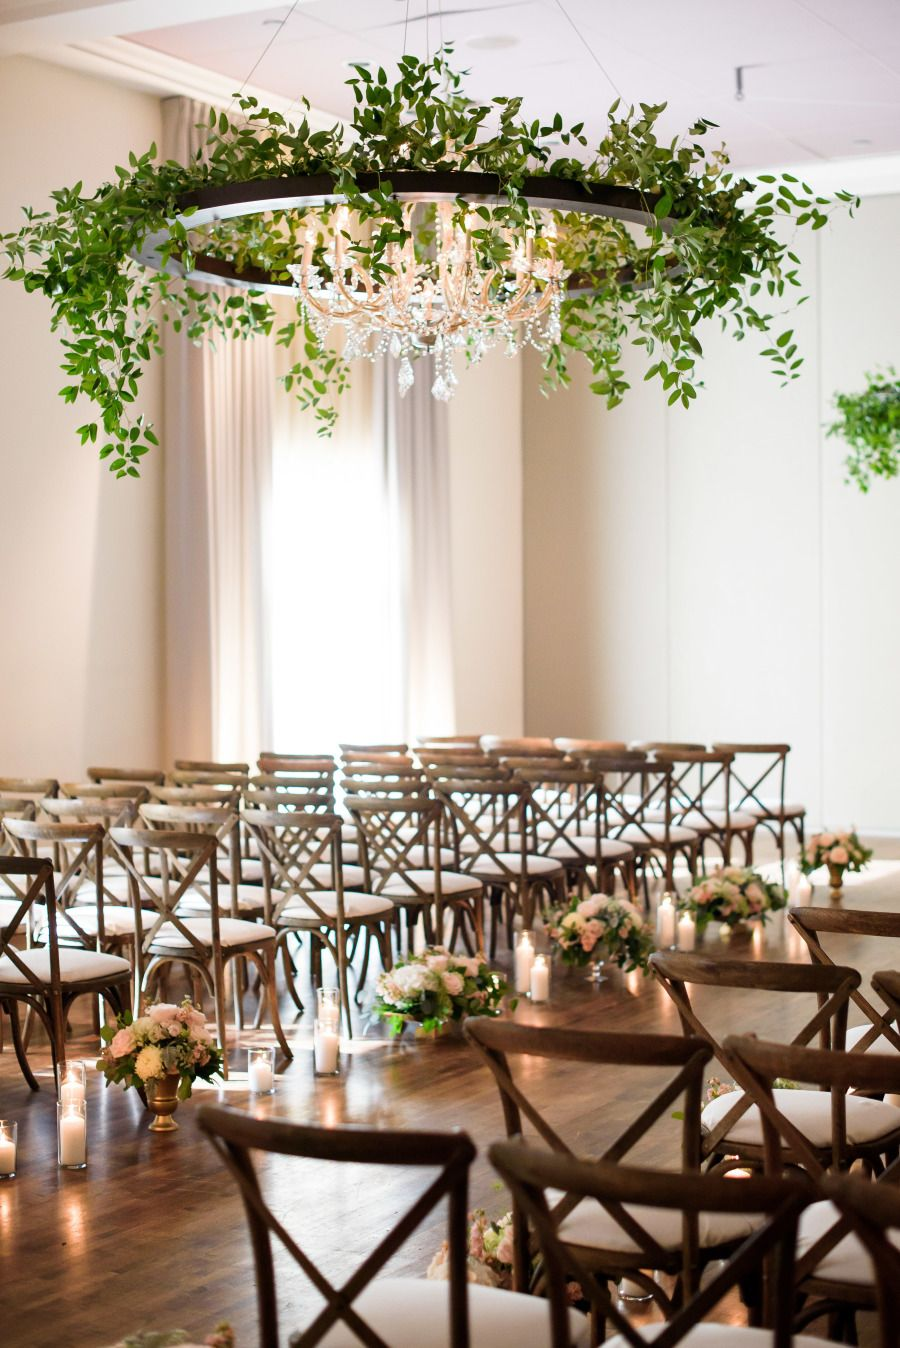 Urban Garden Wedding With Greenery Covered Chandeliers Wedding Chandelier Garden Weddings Ceremony Ceremony Candles